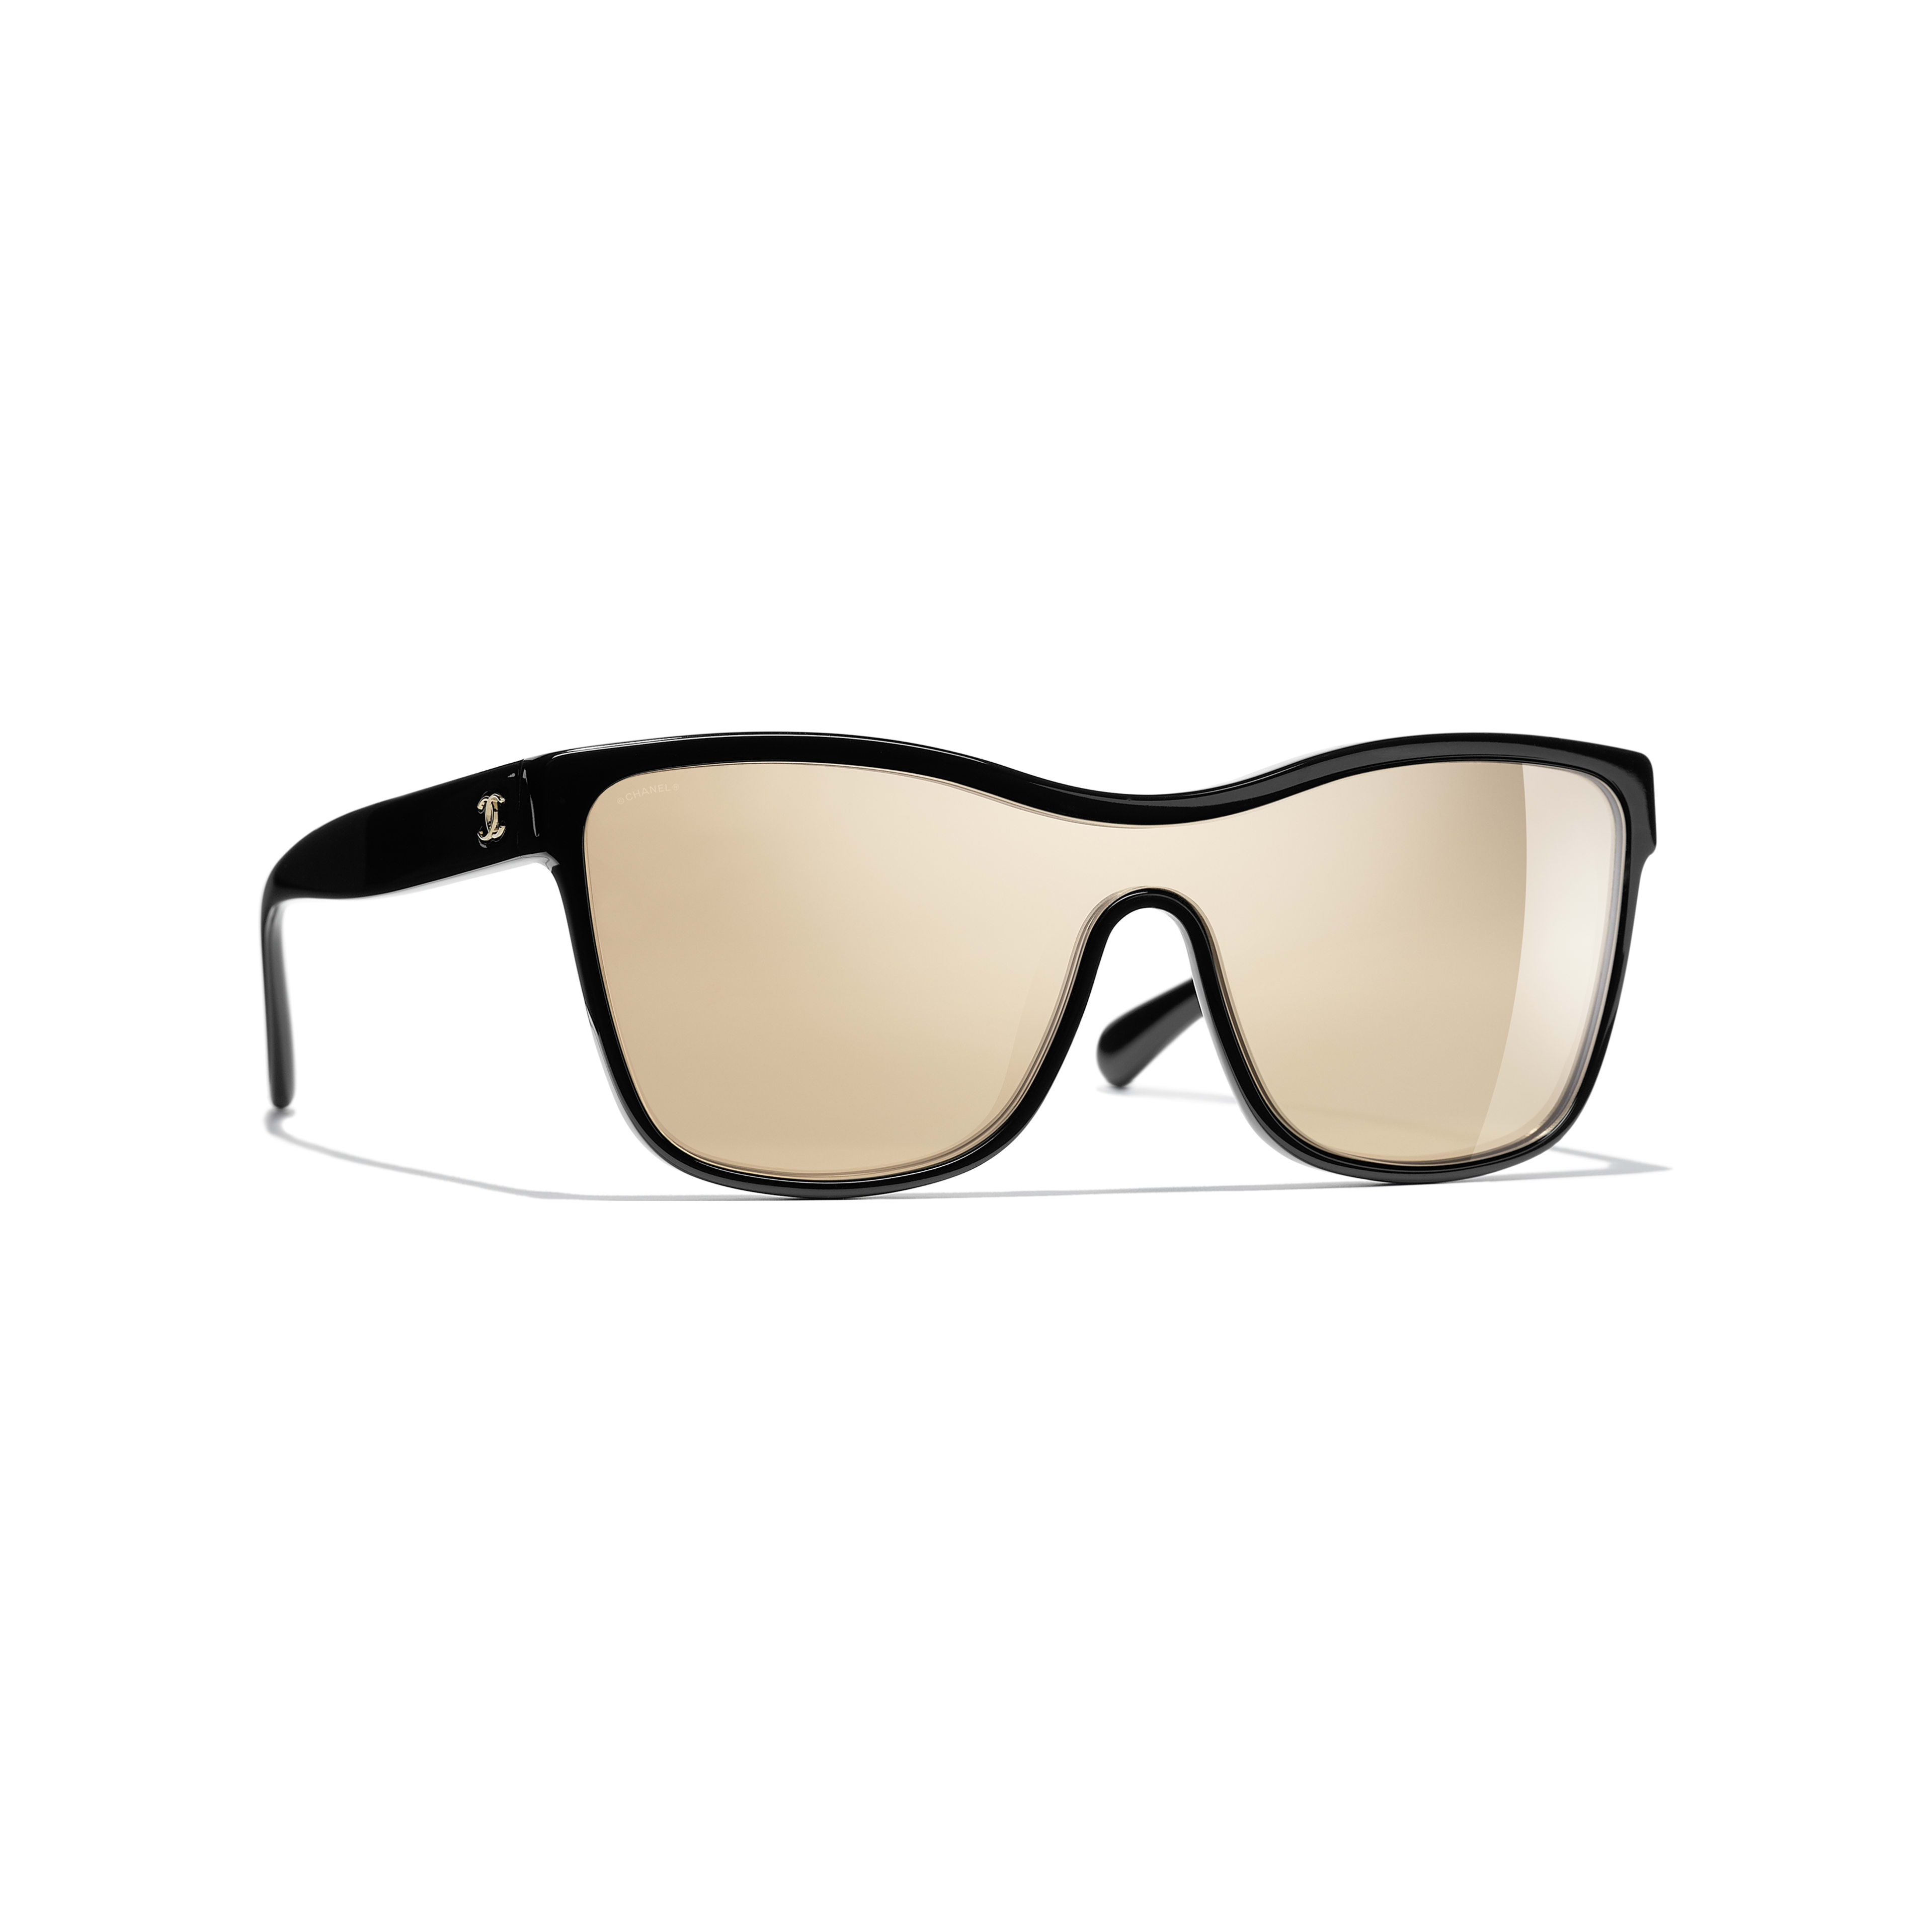 Shield Sunglasses - Black - Acetate - Default view - see full sized version